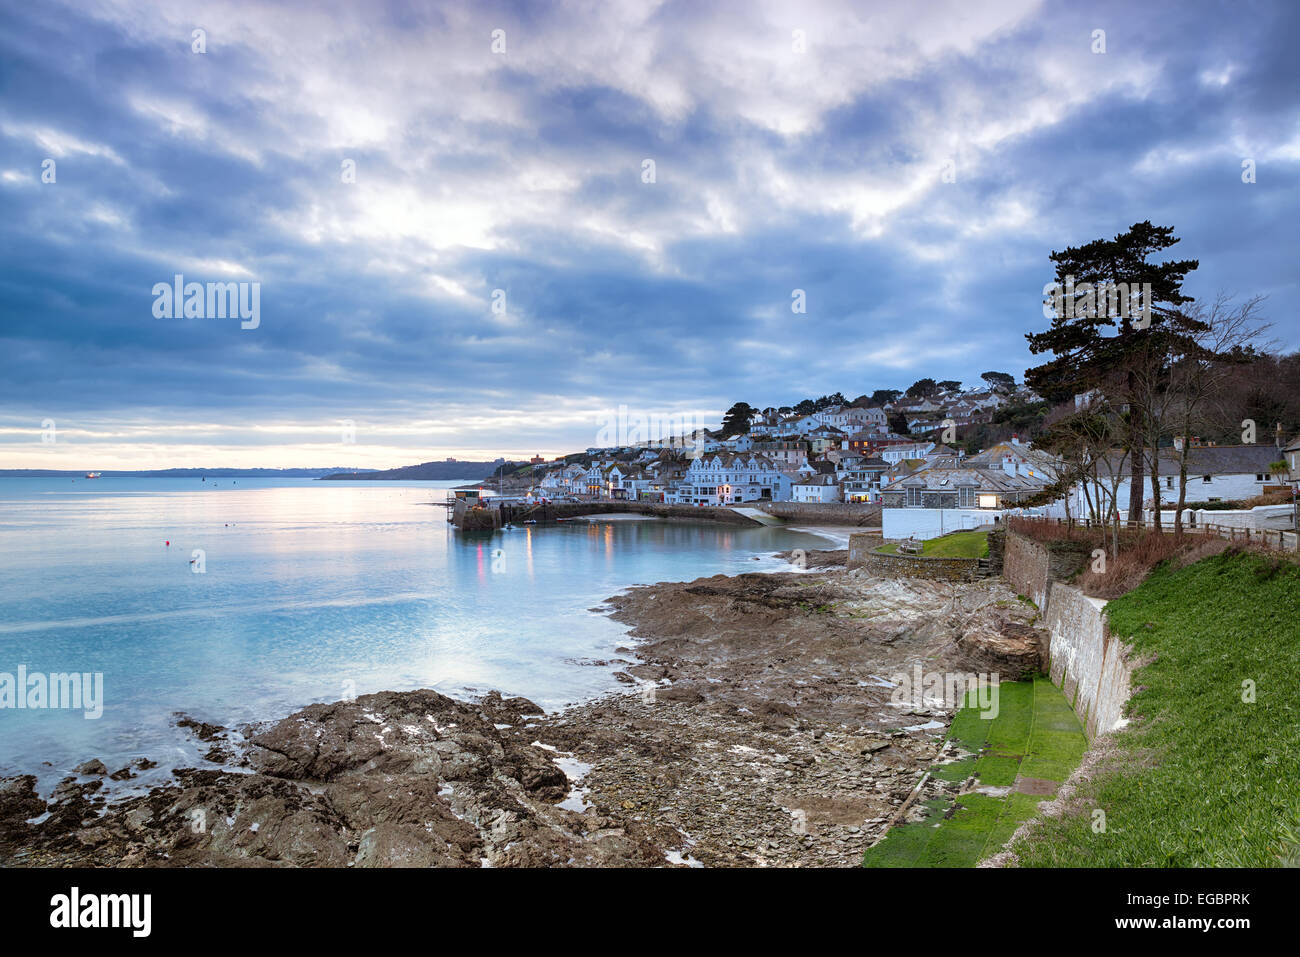 Dusk at St Mawes - Stock Image